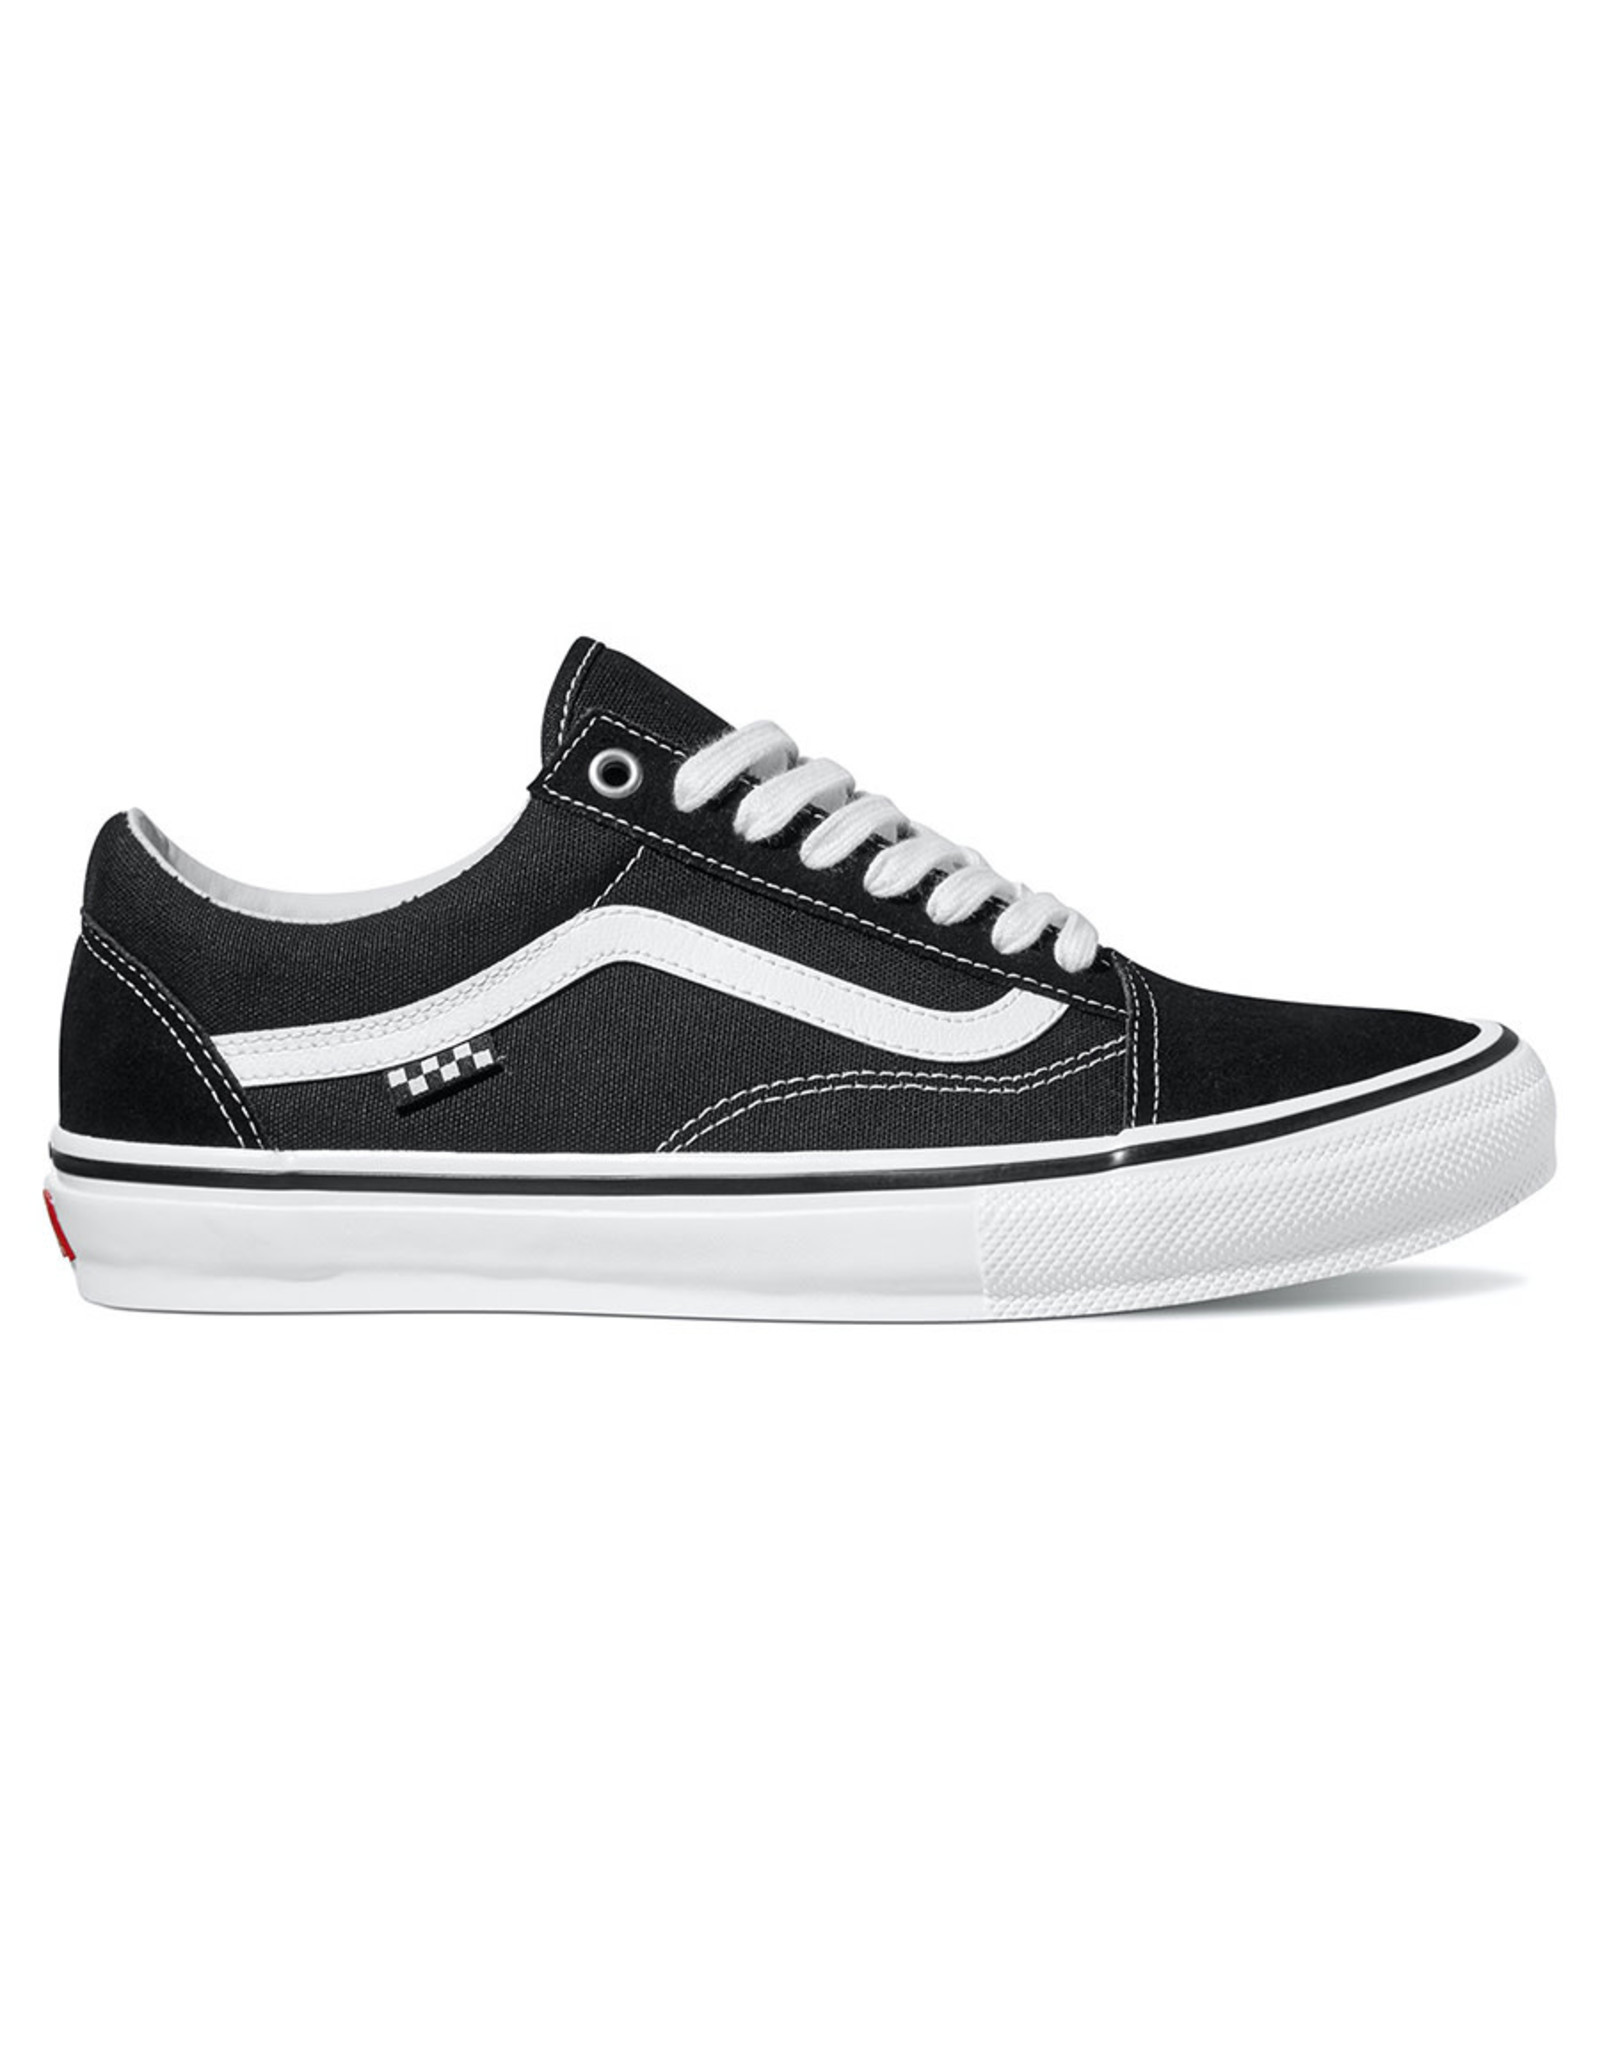 Vans Vans Shoe Skate Old Skool (Black/White)